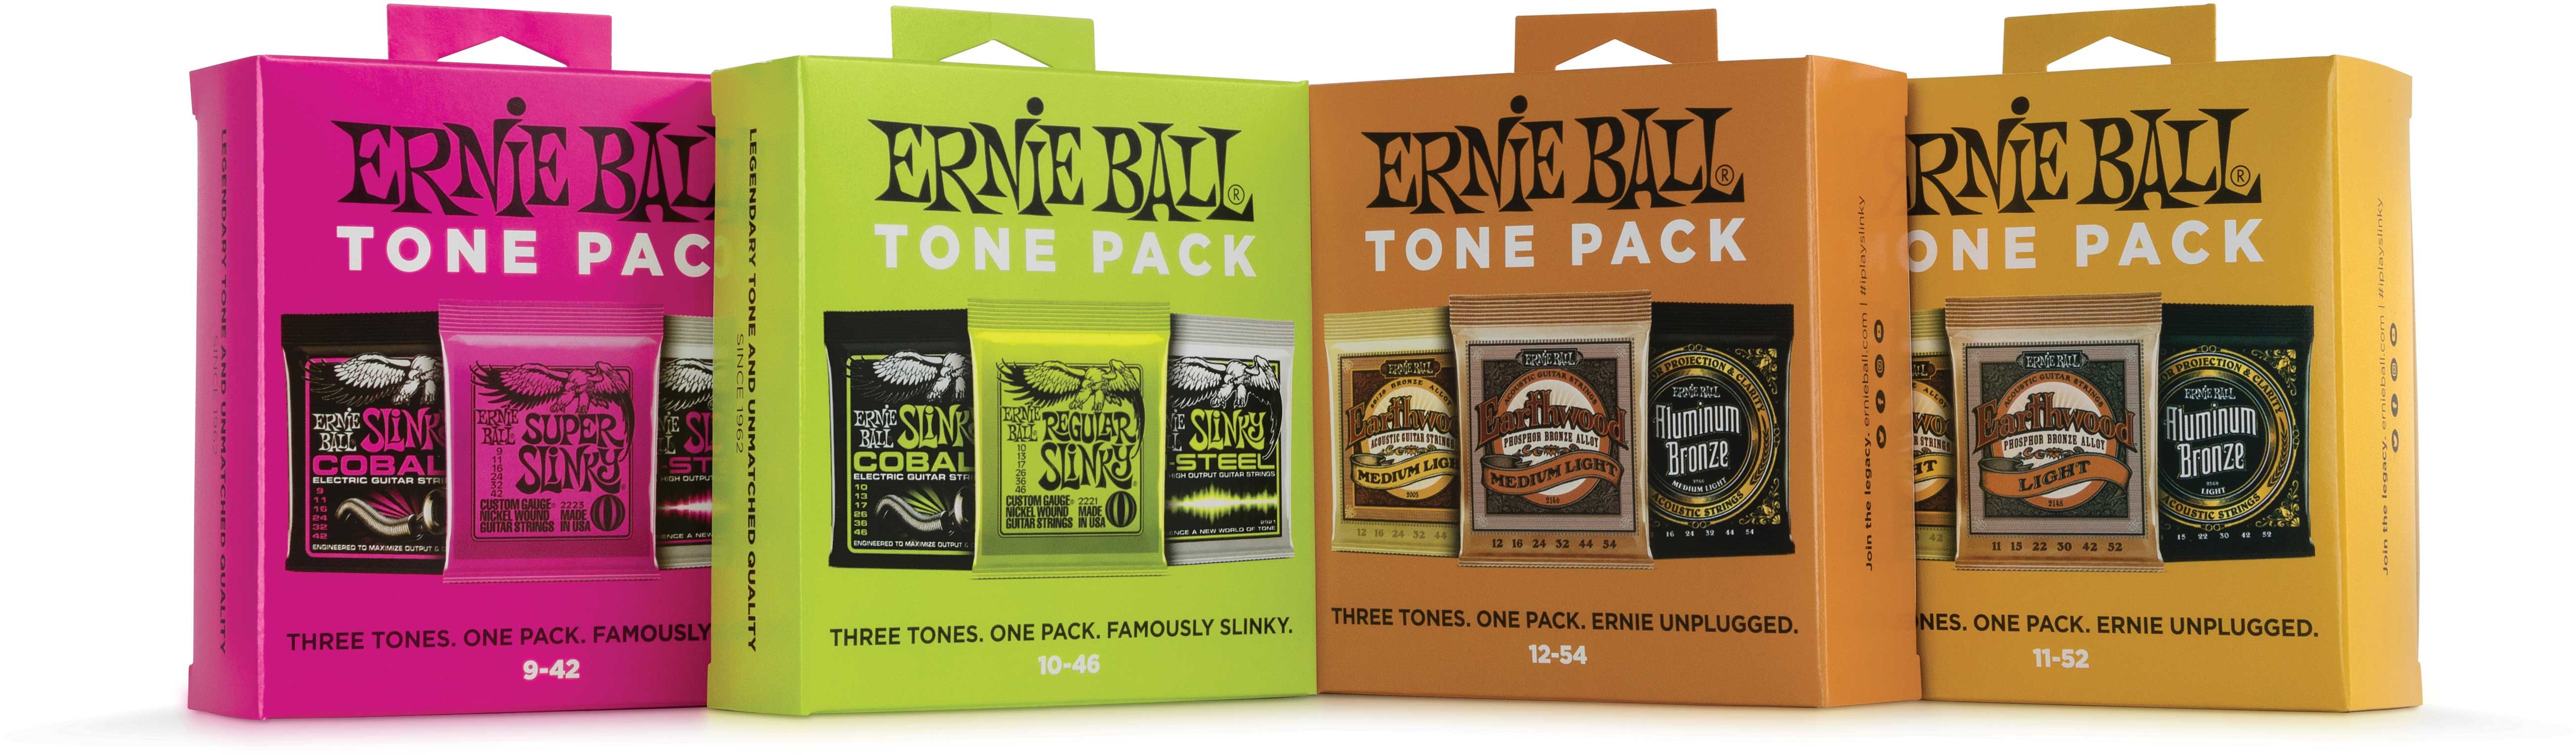 tone-packs-all